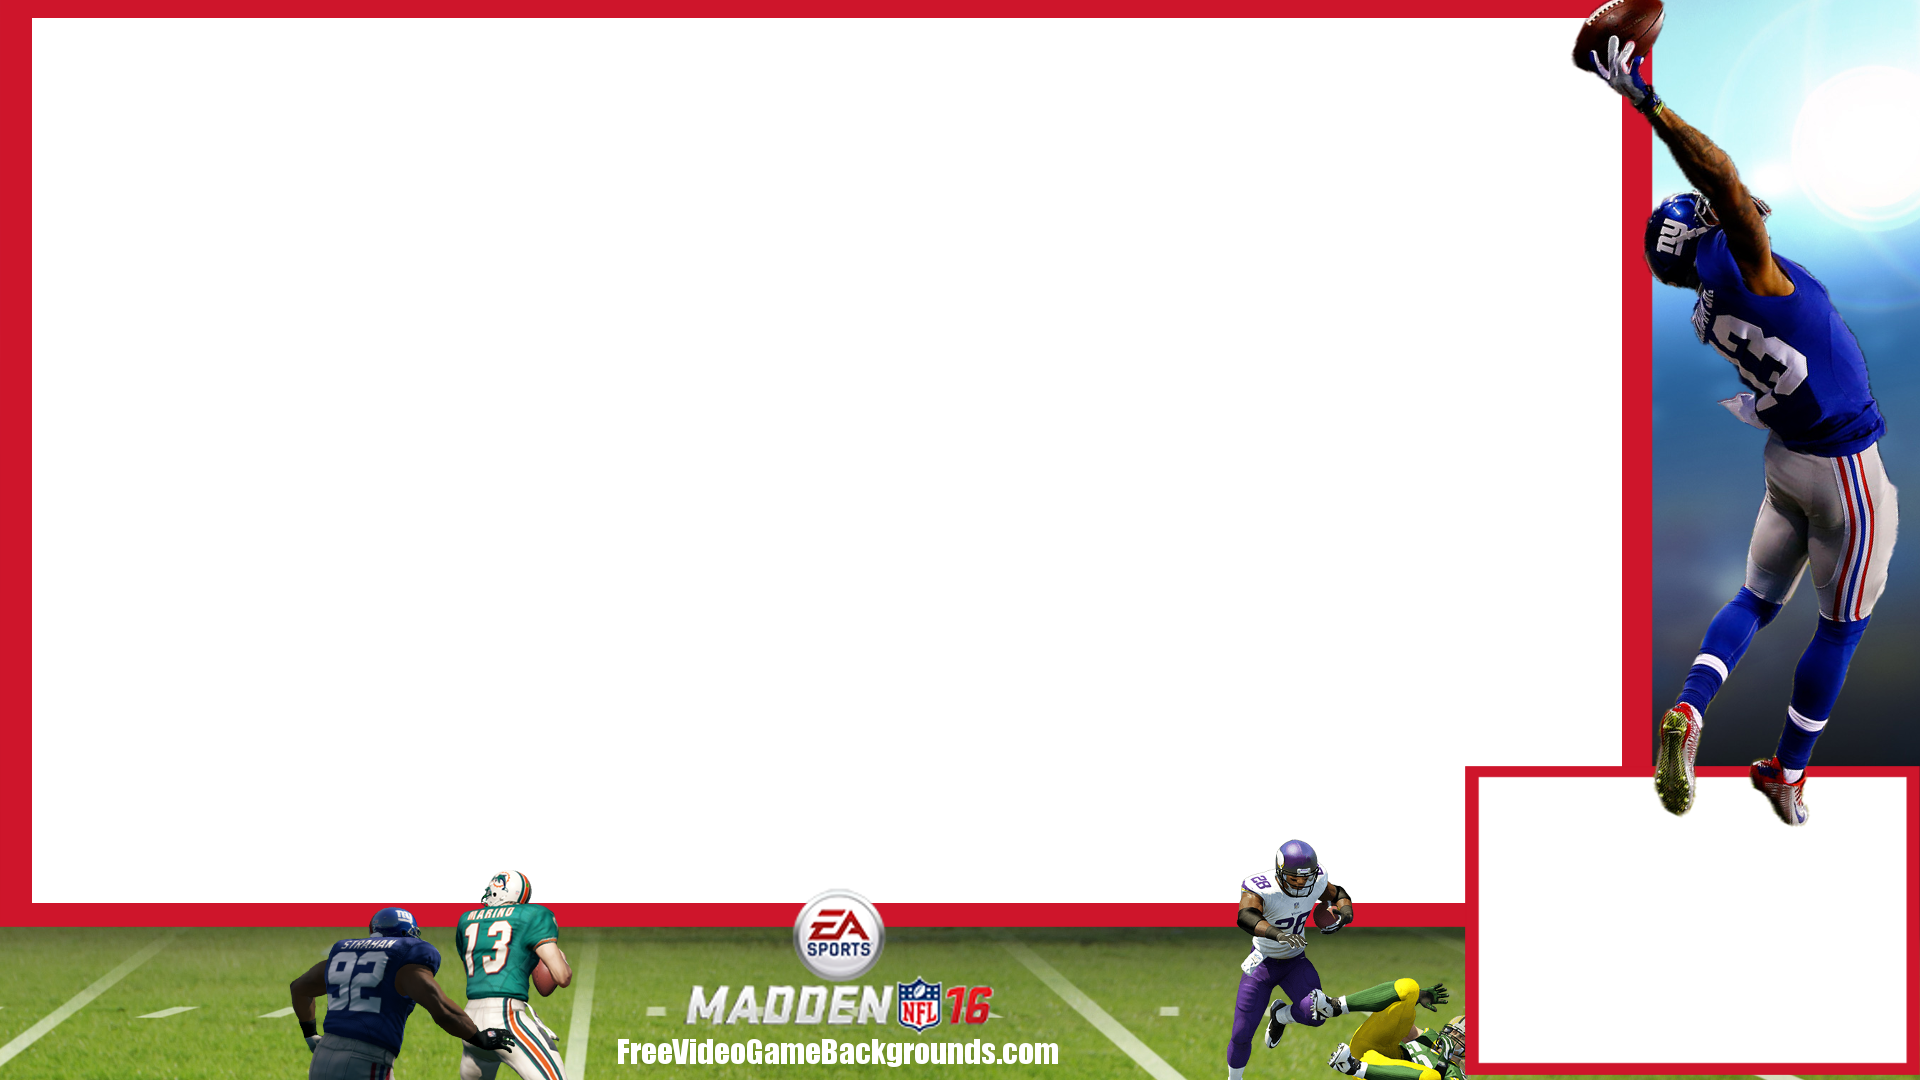 Pin On Madden 16 Tips And Awesomeness